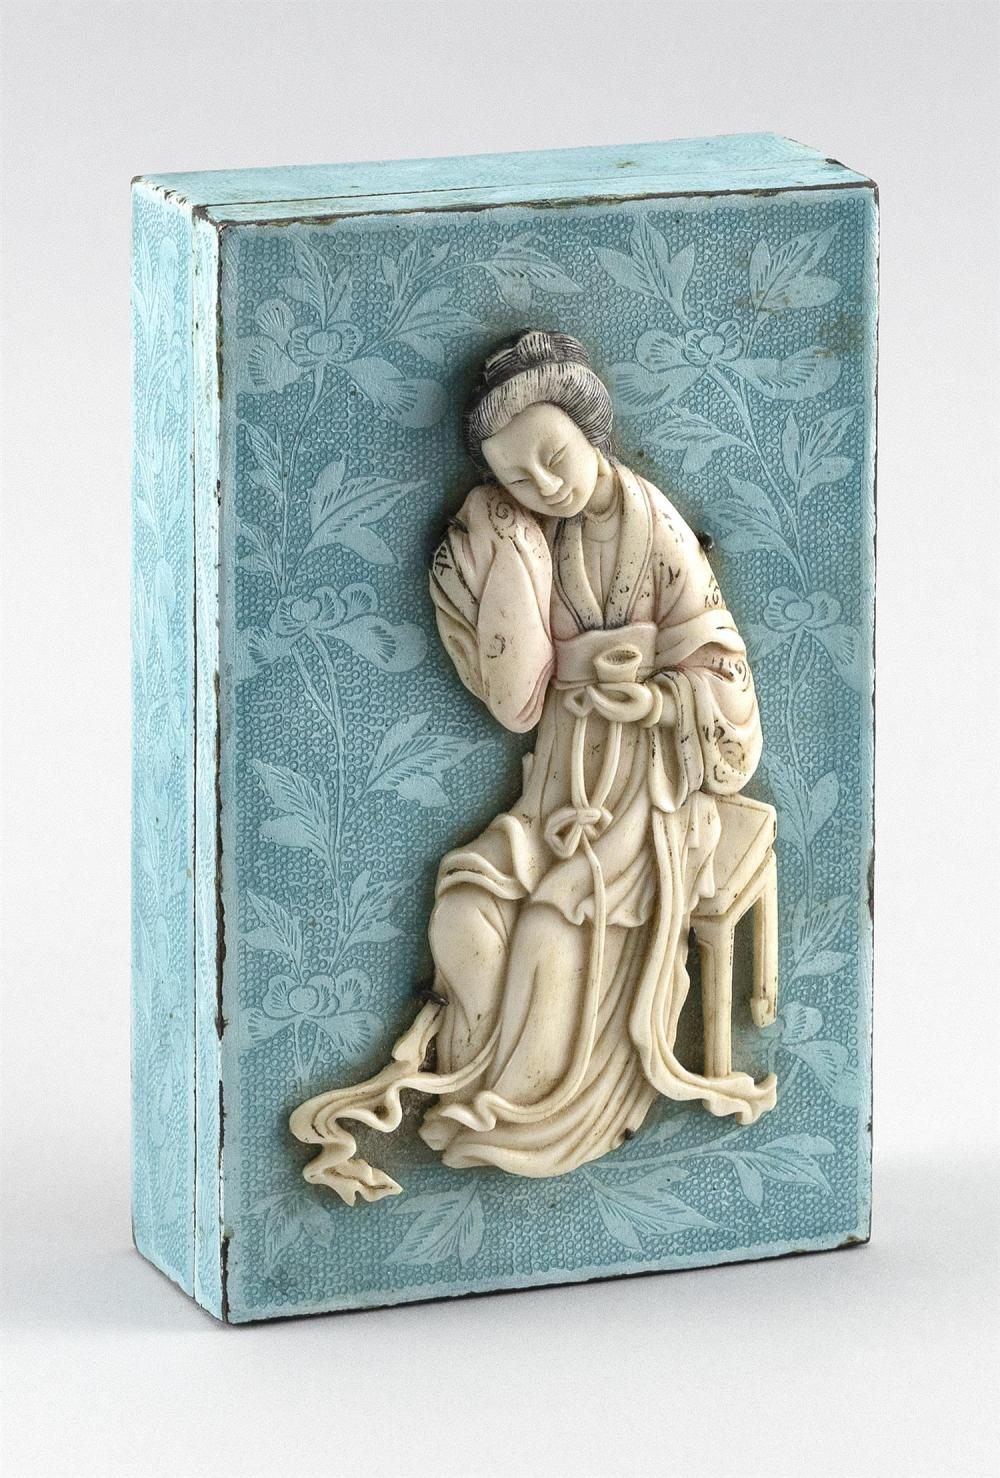 JAPANESE LIGHT GREEN ENAMEL AND SILVER METAL BOX With engraved floral decoration and a raised ivory meijin figure on cover. Height 1...